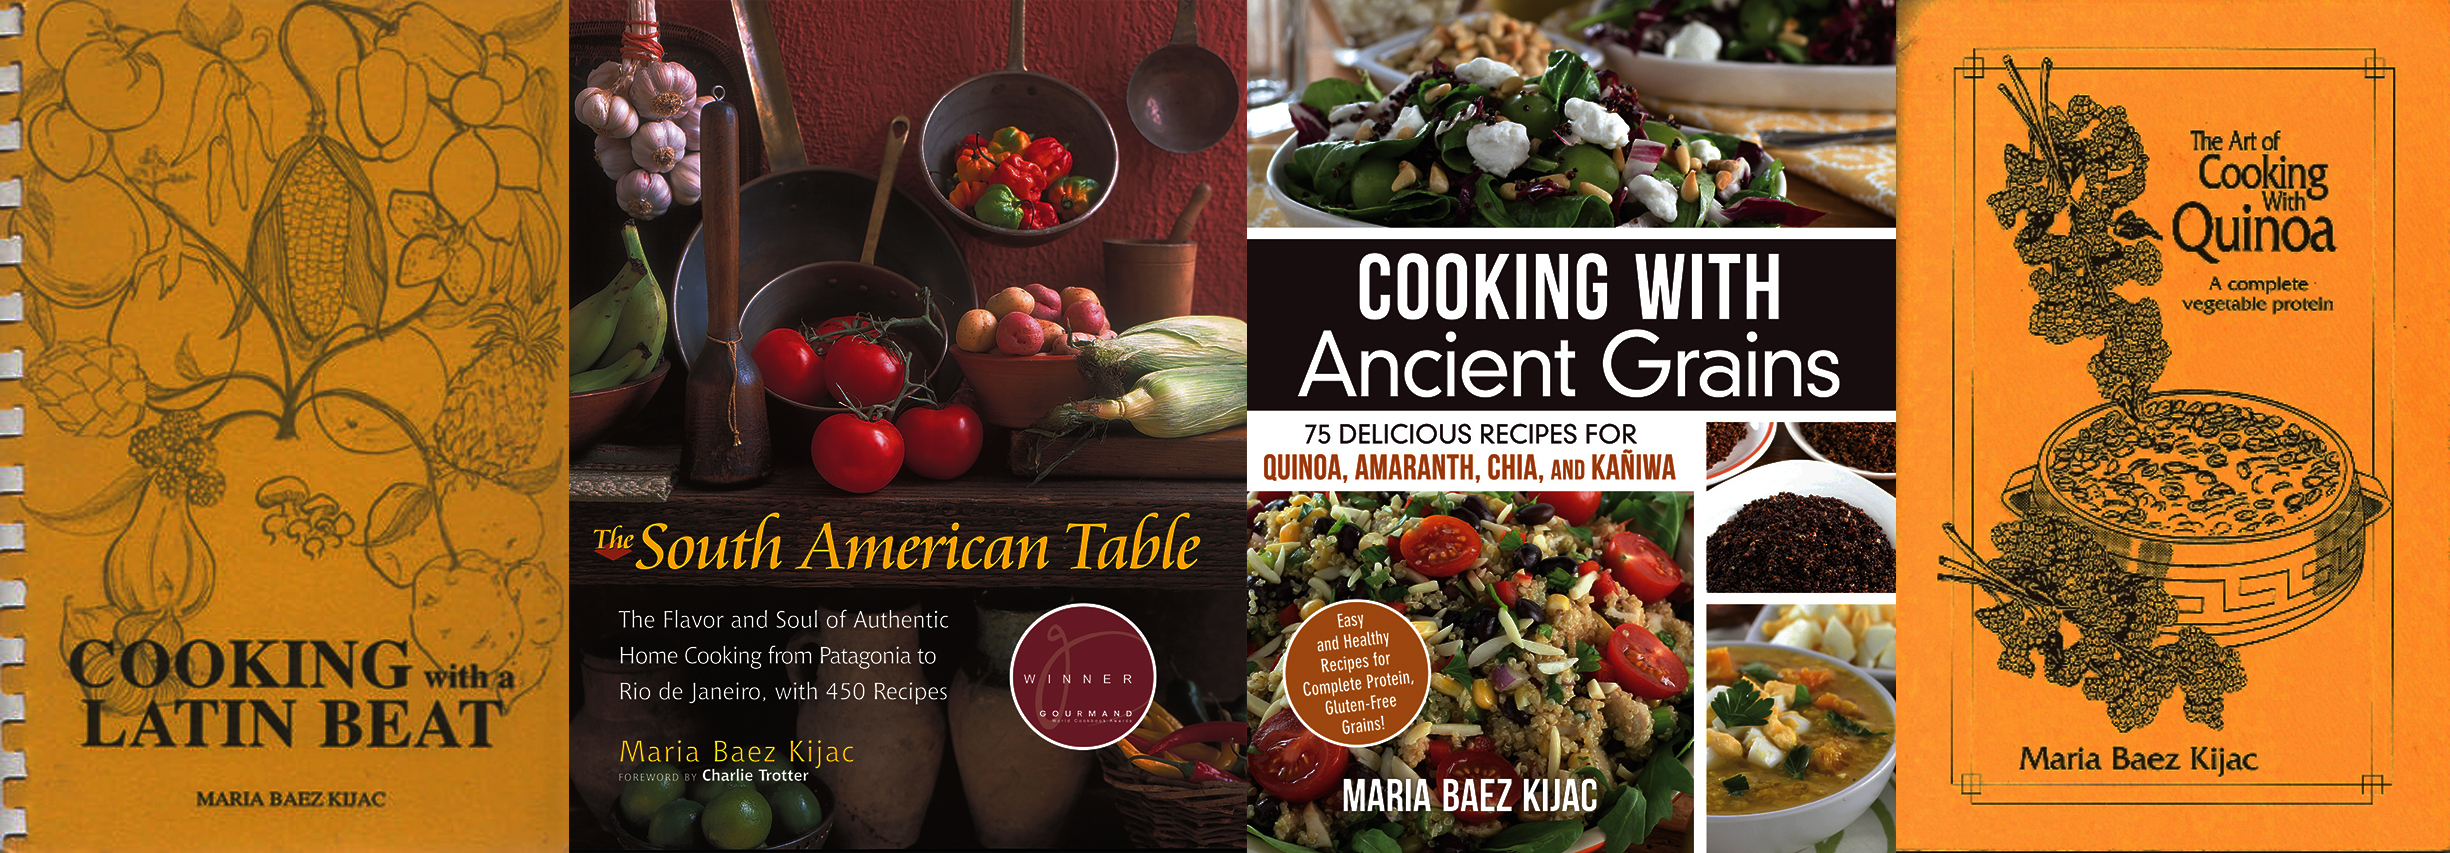 American cooking revolution better living through natural foods forumfinder Choice Image